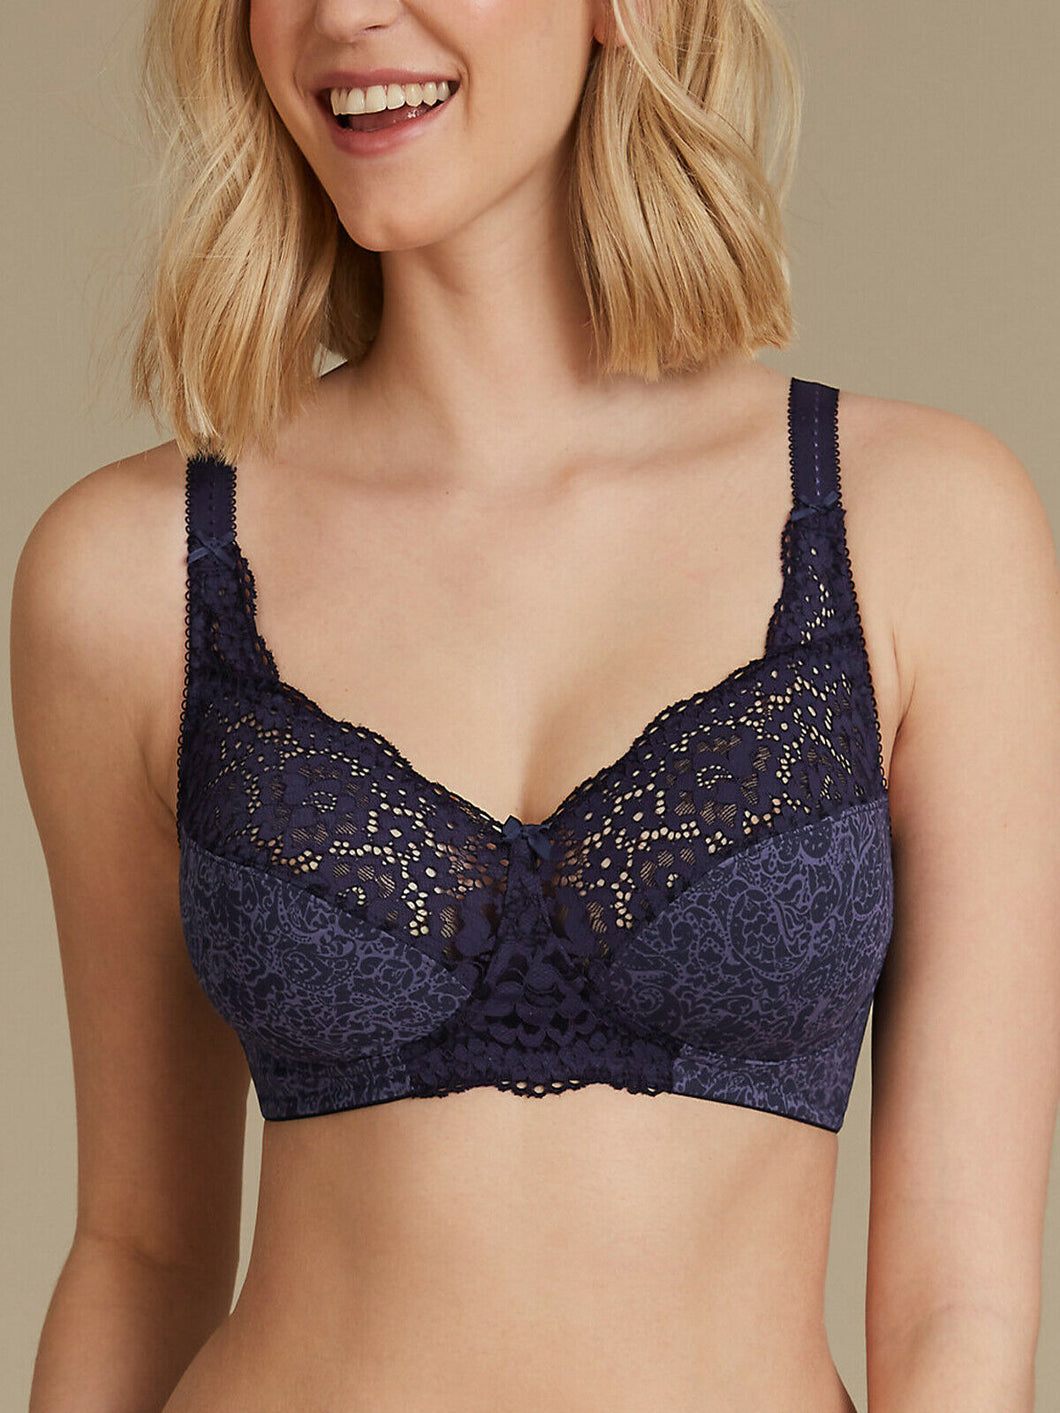 Indigo Mix Vintage Lace Cotton Rich Full Cup Bra